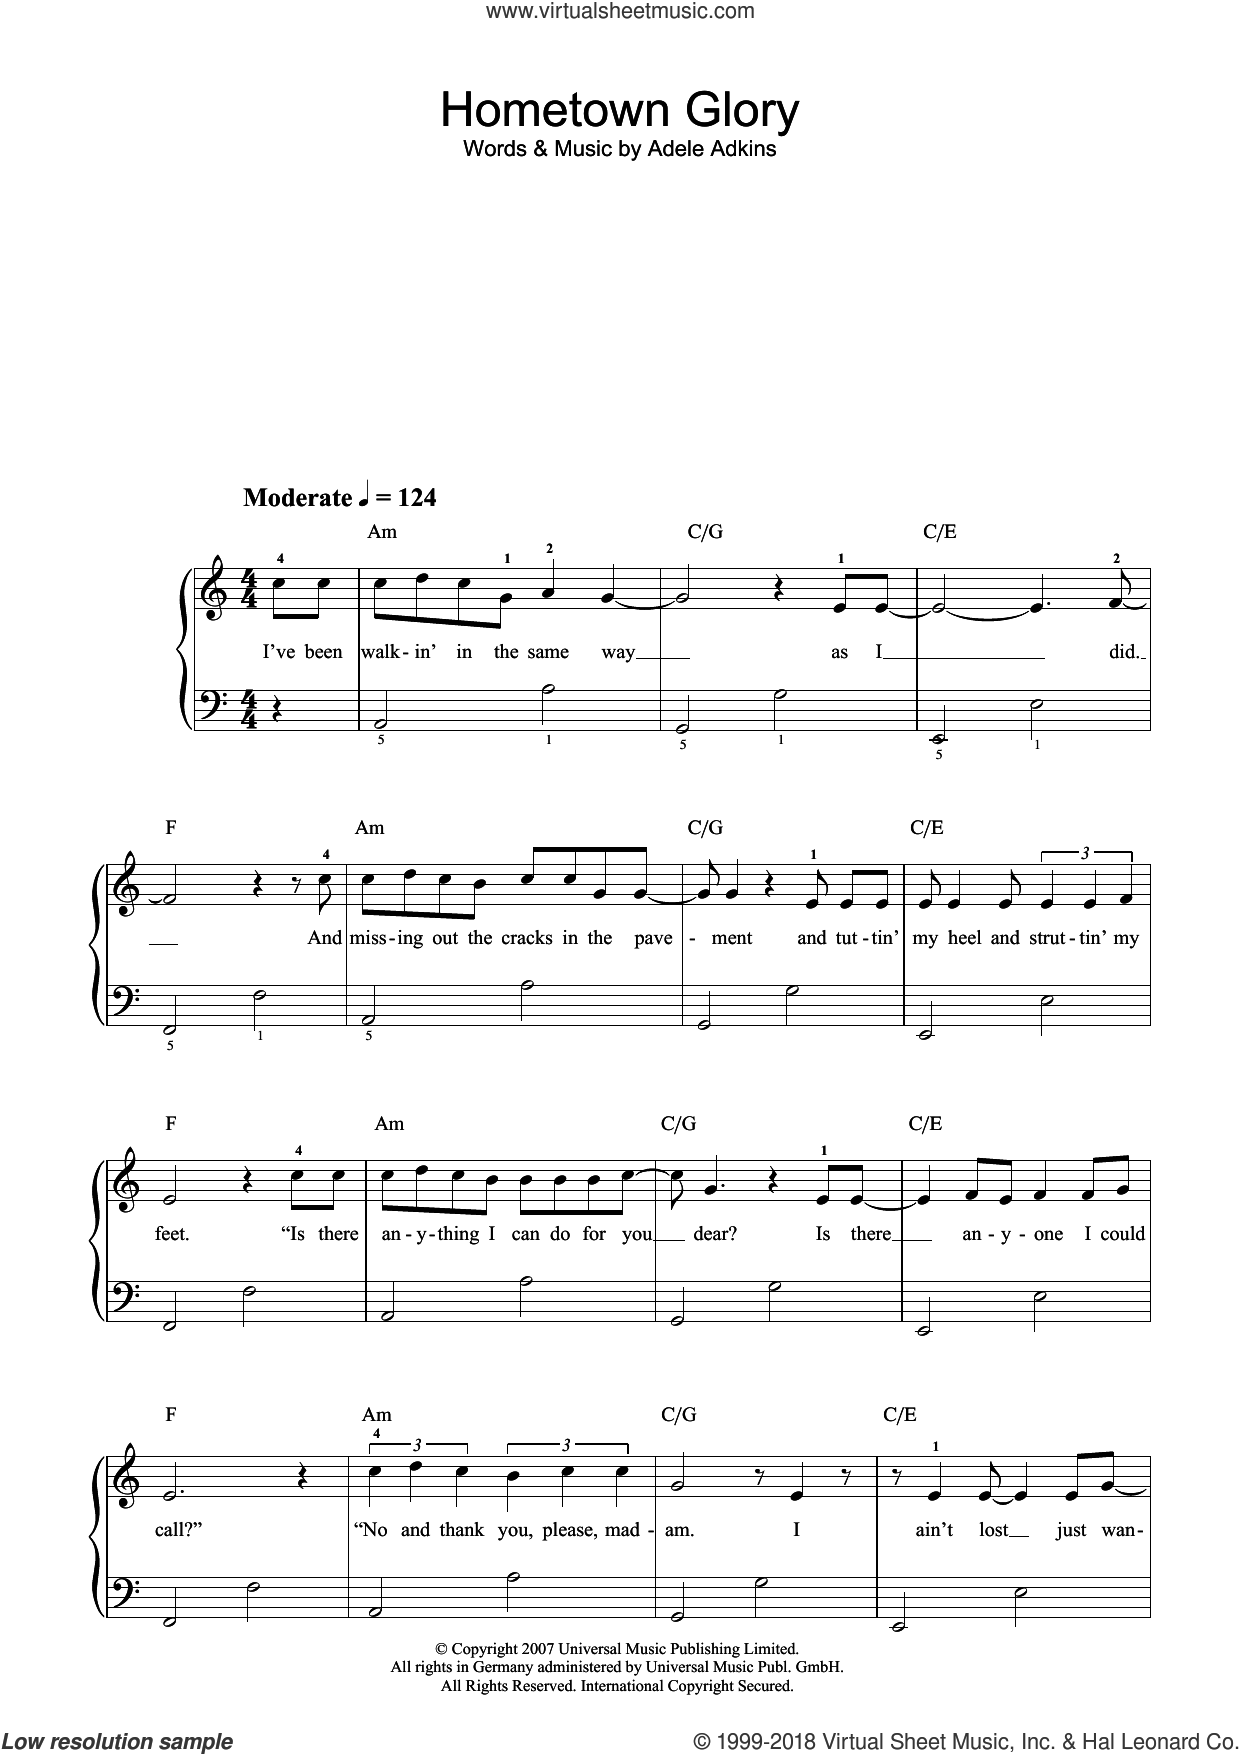 Hometown Glory (Radio Edit) sheet music for piano solo by Adele Adkins and Adele. Score Image Preview.